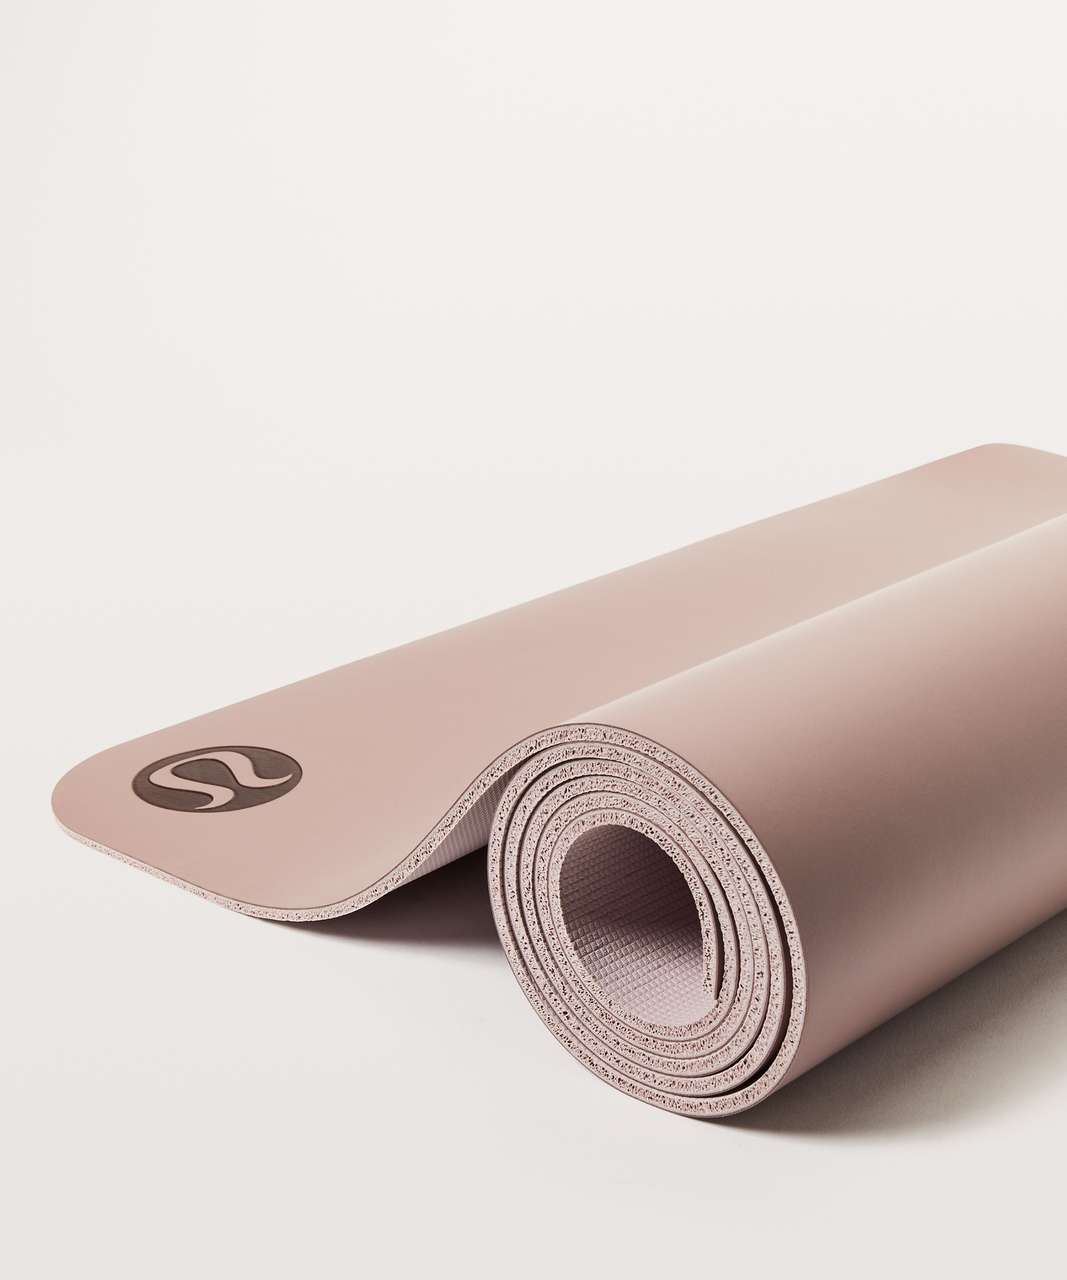 Lululemon The Reversible Mat 5mm - Misty Mauve / Porcelain Pink (First Release)